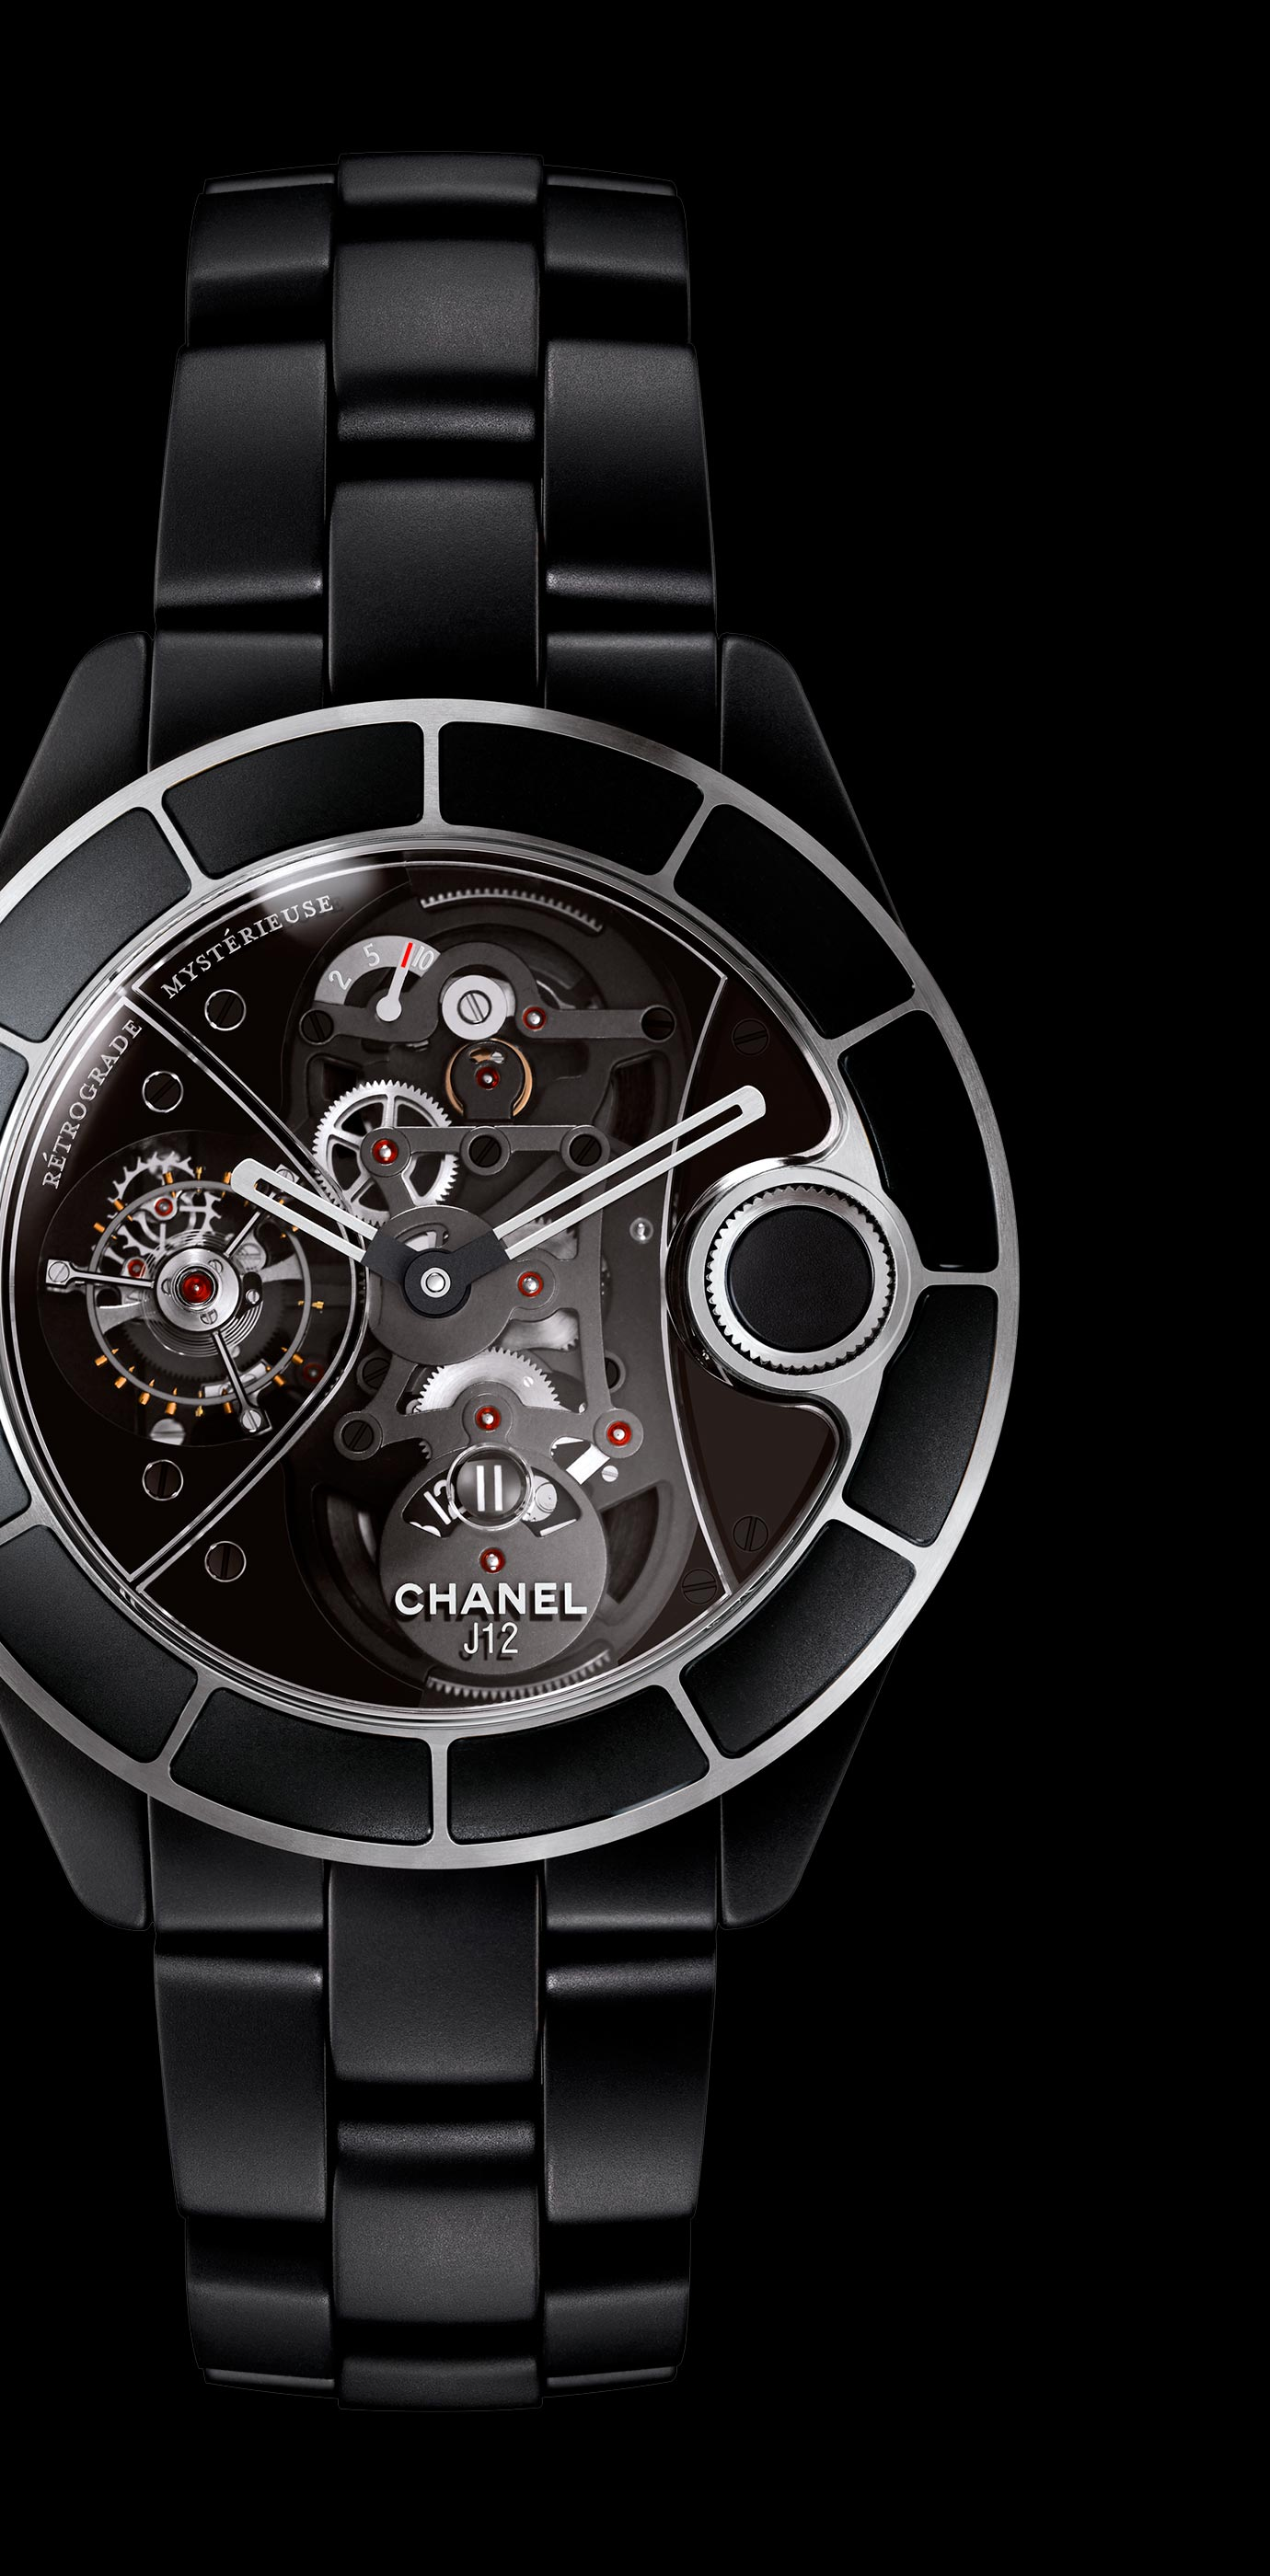 J12 Rétrograde Mystérieuse watch in matte black ceramic, rétrograde mystérieuse caliber and APRP for CHANEL tourbillon, retractable crown. - Enlarged view